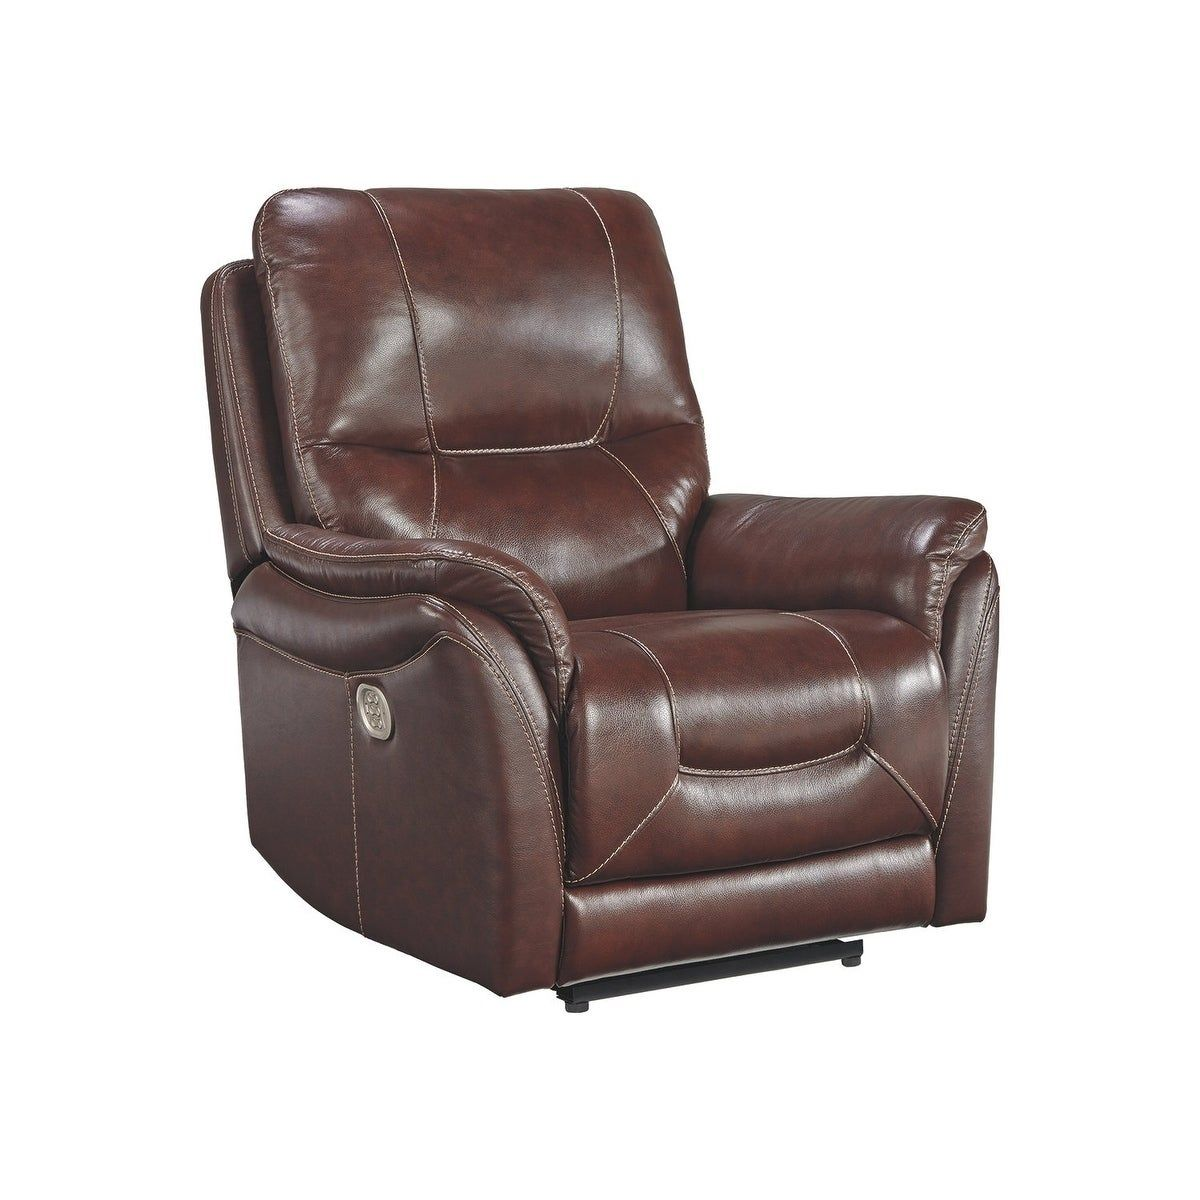 Online Shopping Bedding Furniture Electronics Jewelry Clothing More Brown Leather Furniture Power Recliners Leather Furniture #warnerton #chocolate #power #reclining #living #room #set